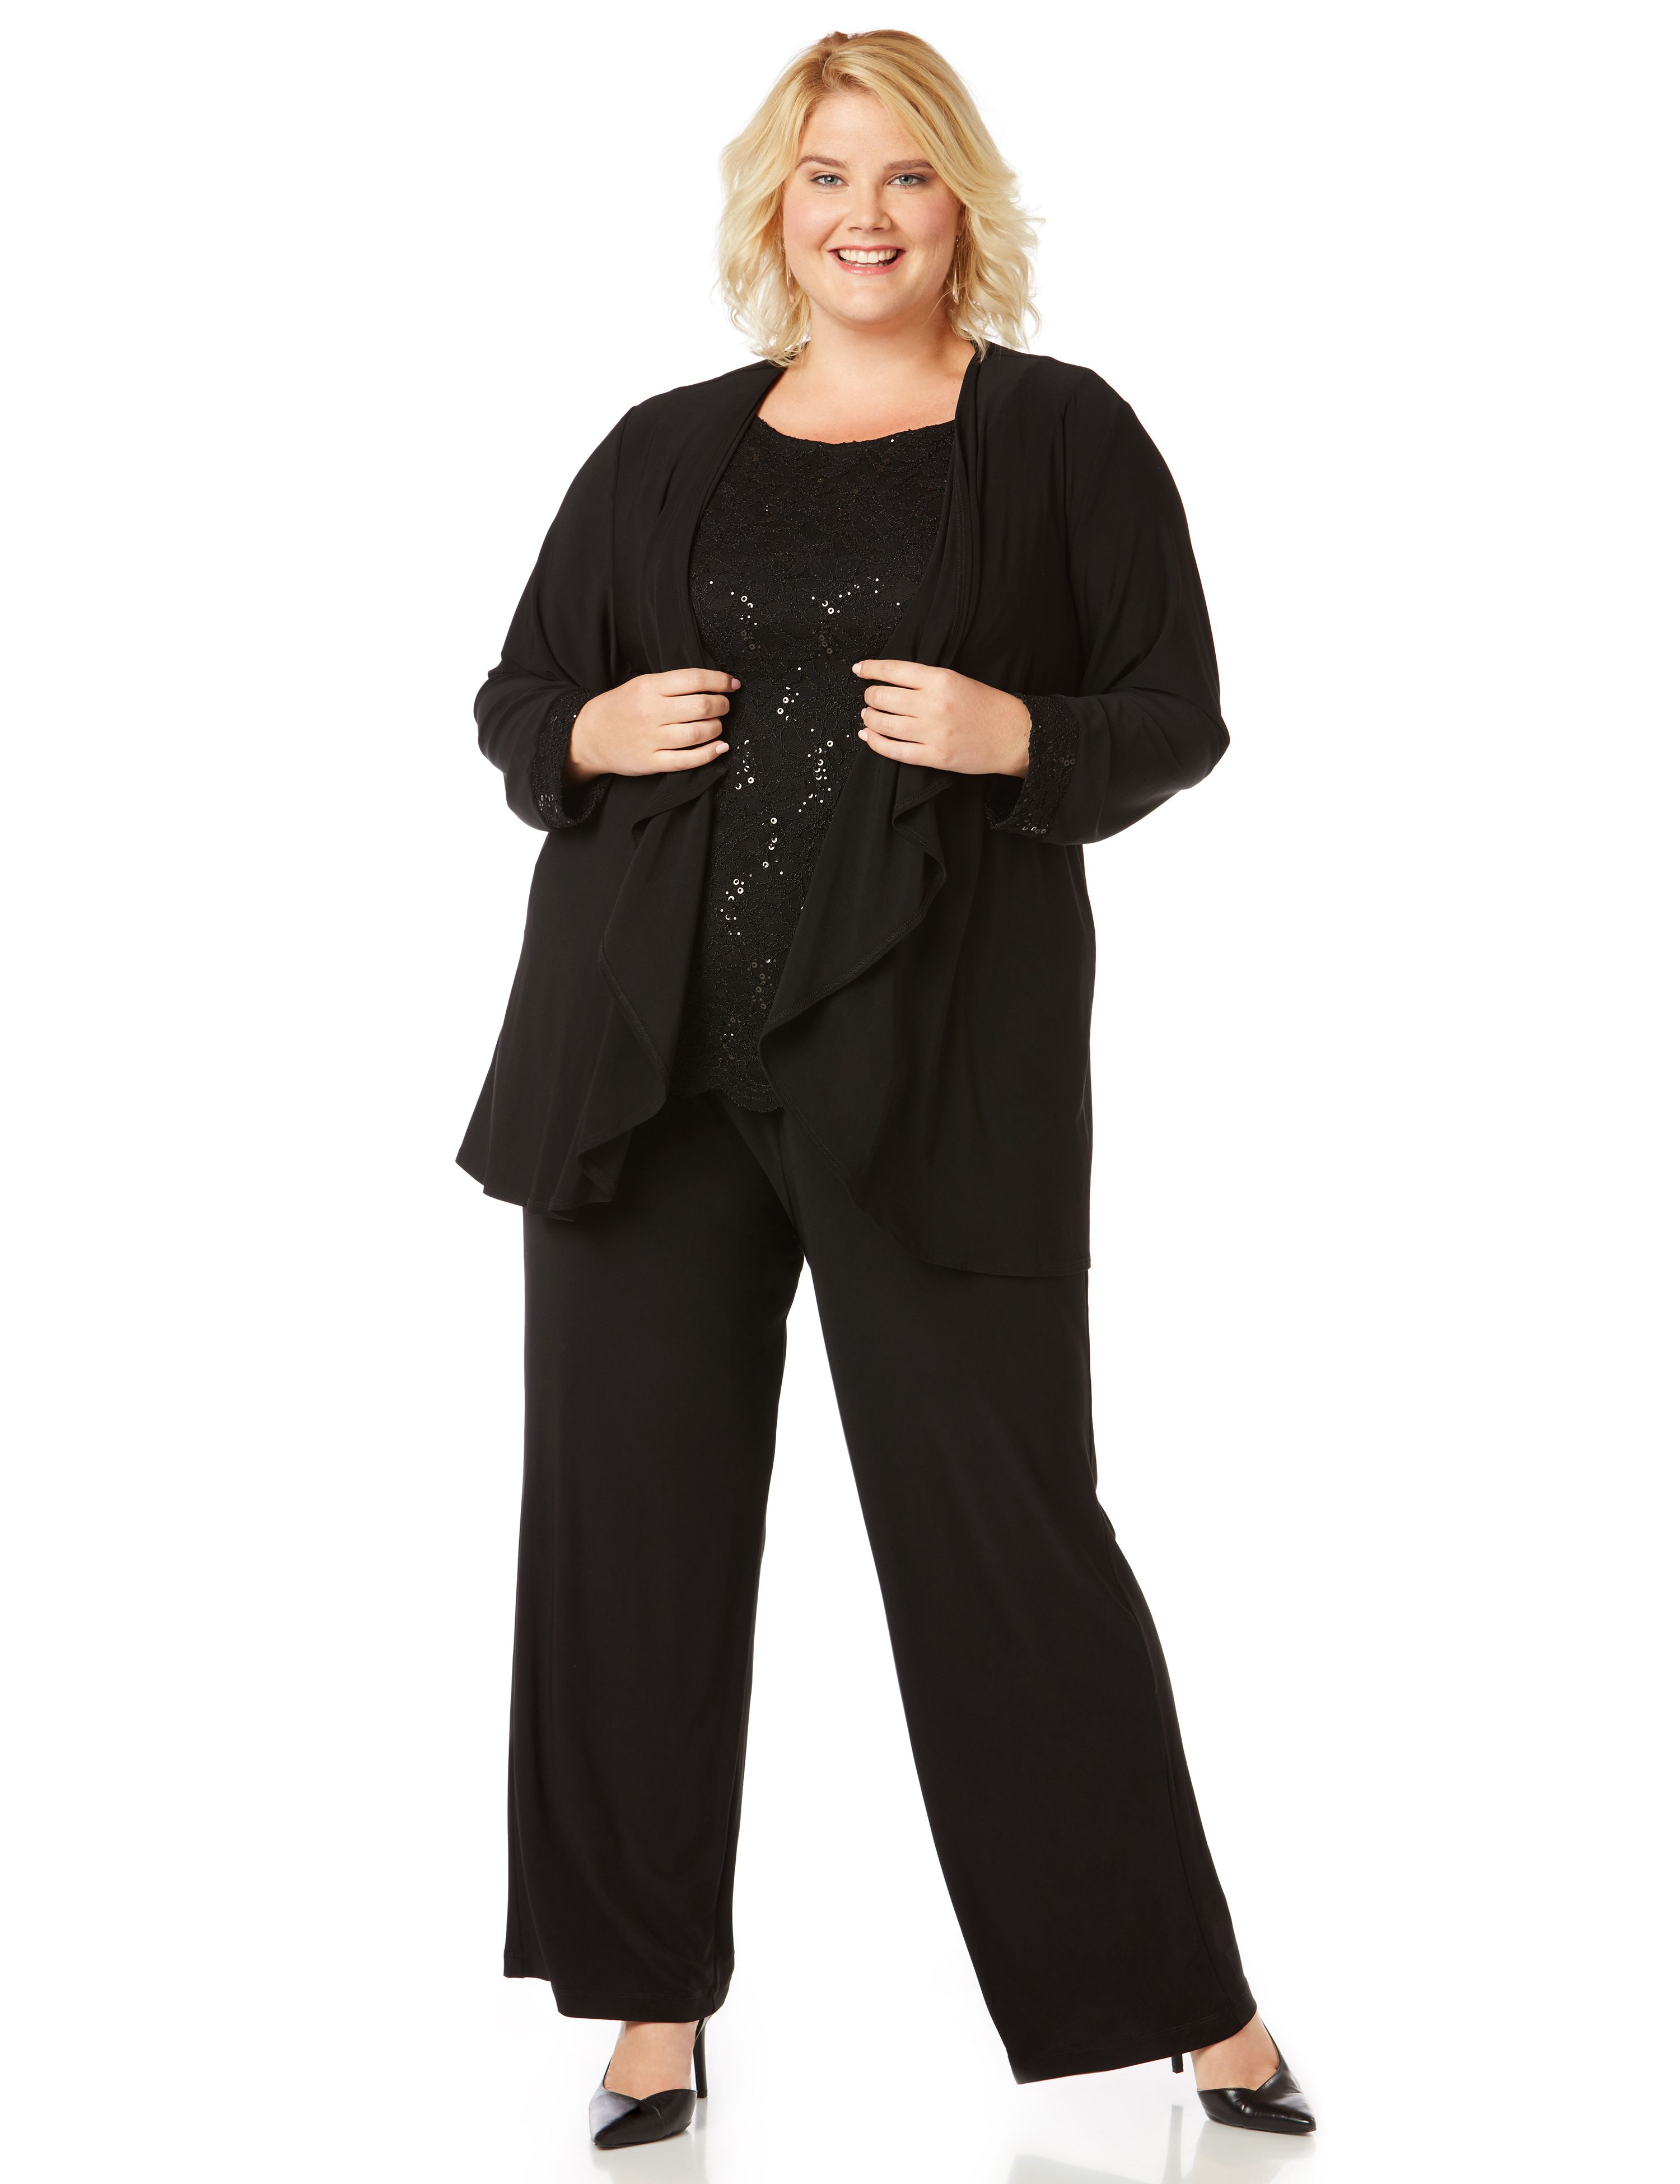 Evening Shine Pantsuit 1086064 TIANNA B PANT SUIT WITH LAC MP-300081737